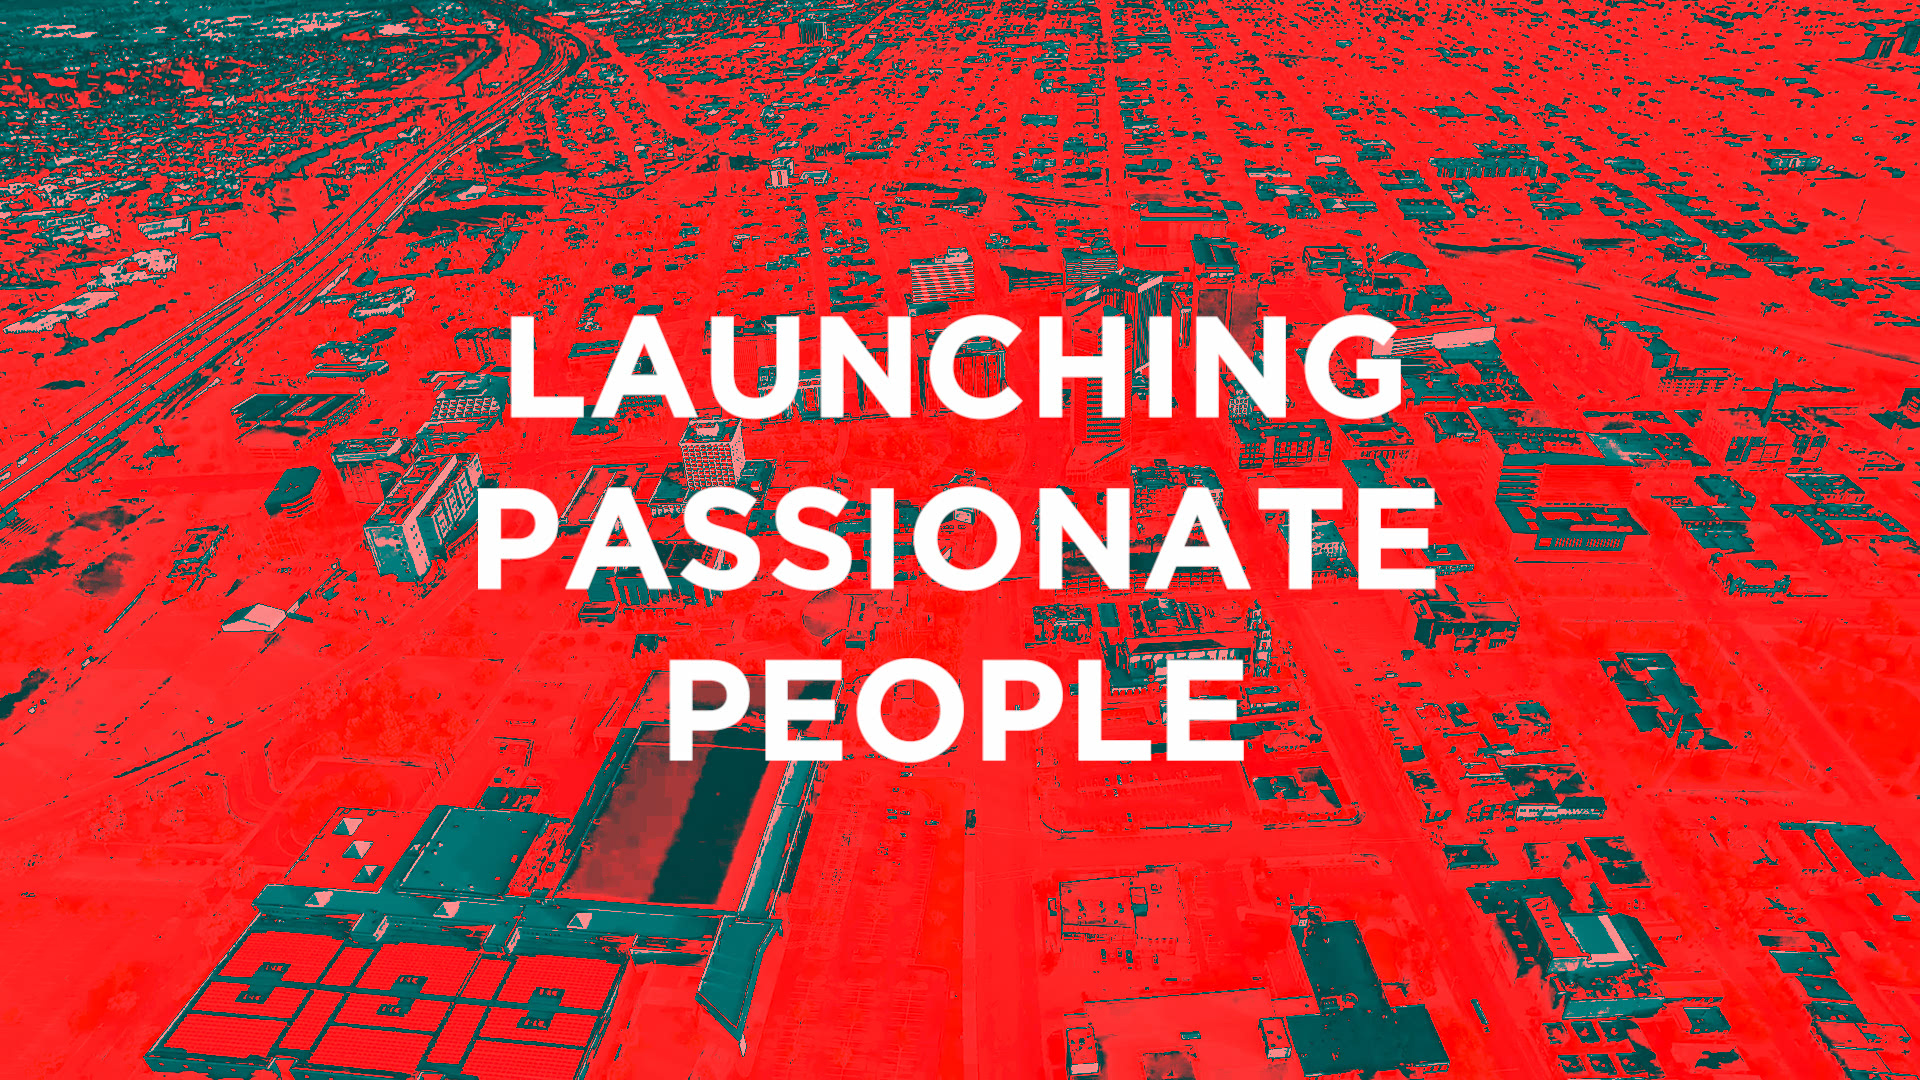 Launching Passionate People 2019